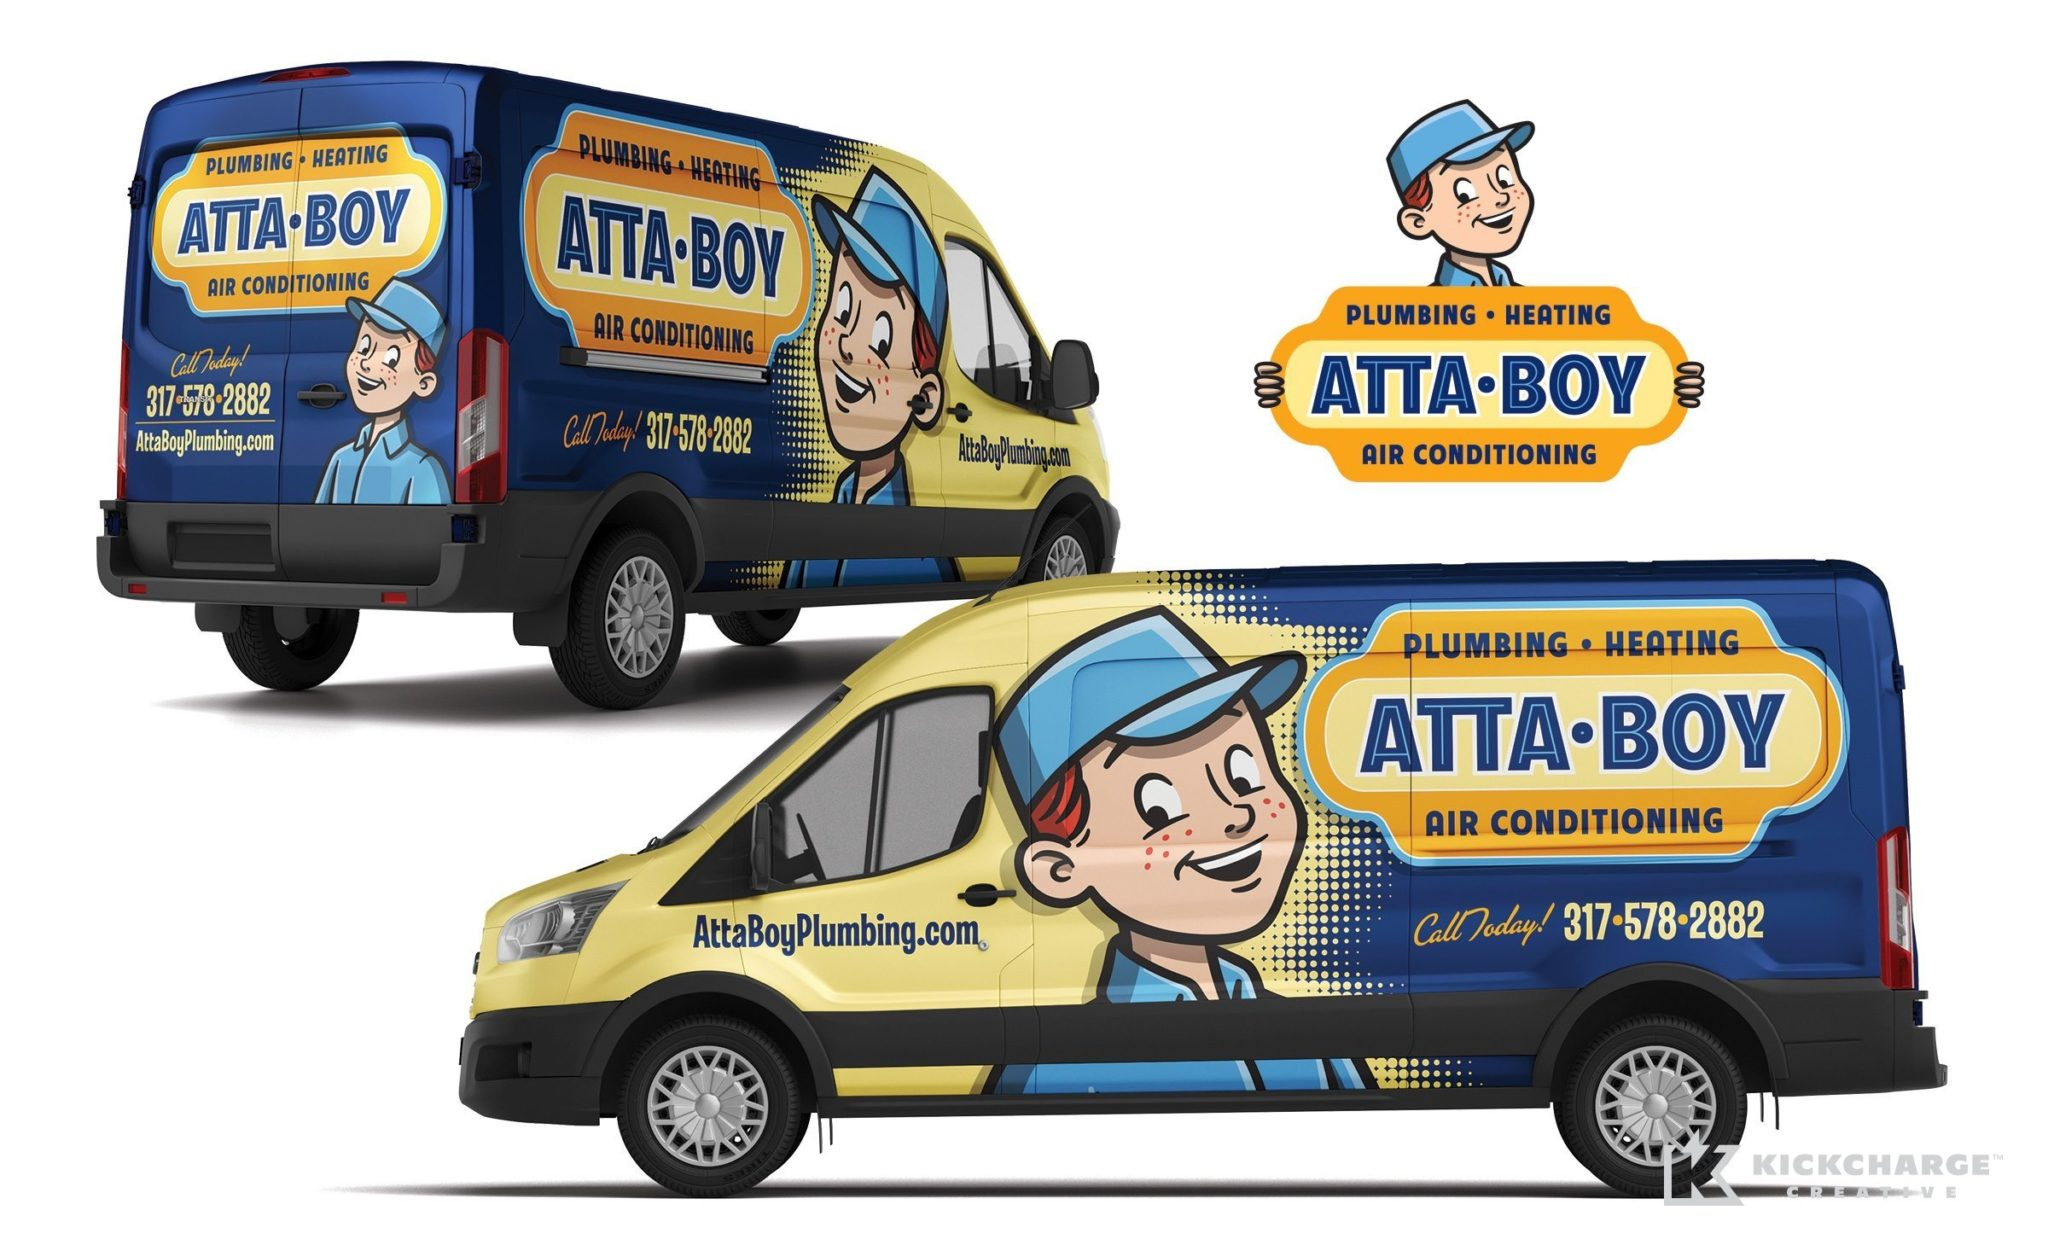 Vehicle wrap design for this plumbing company based out of Indianapolis.